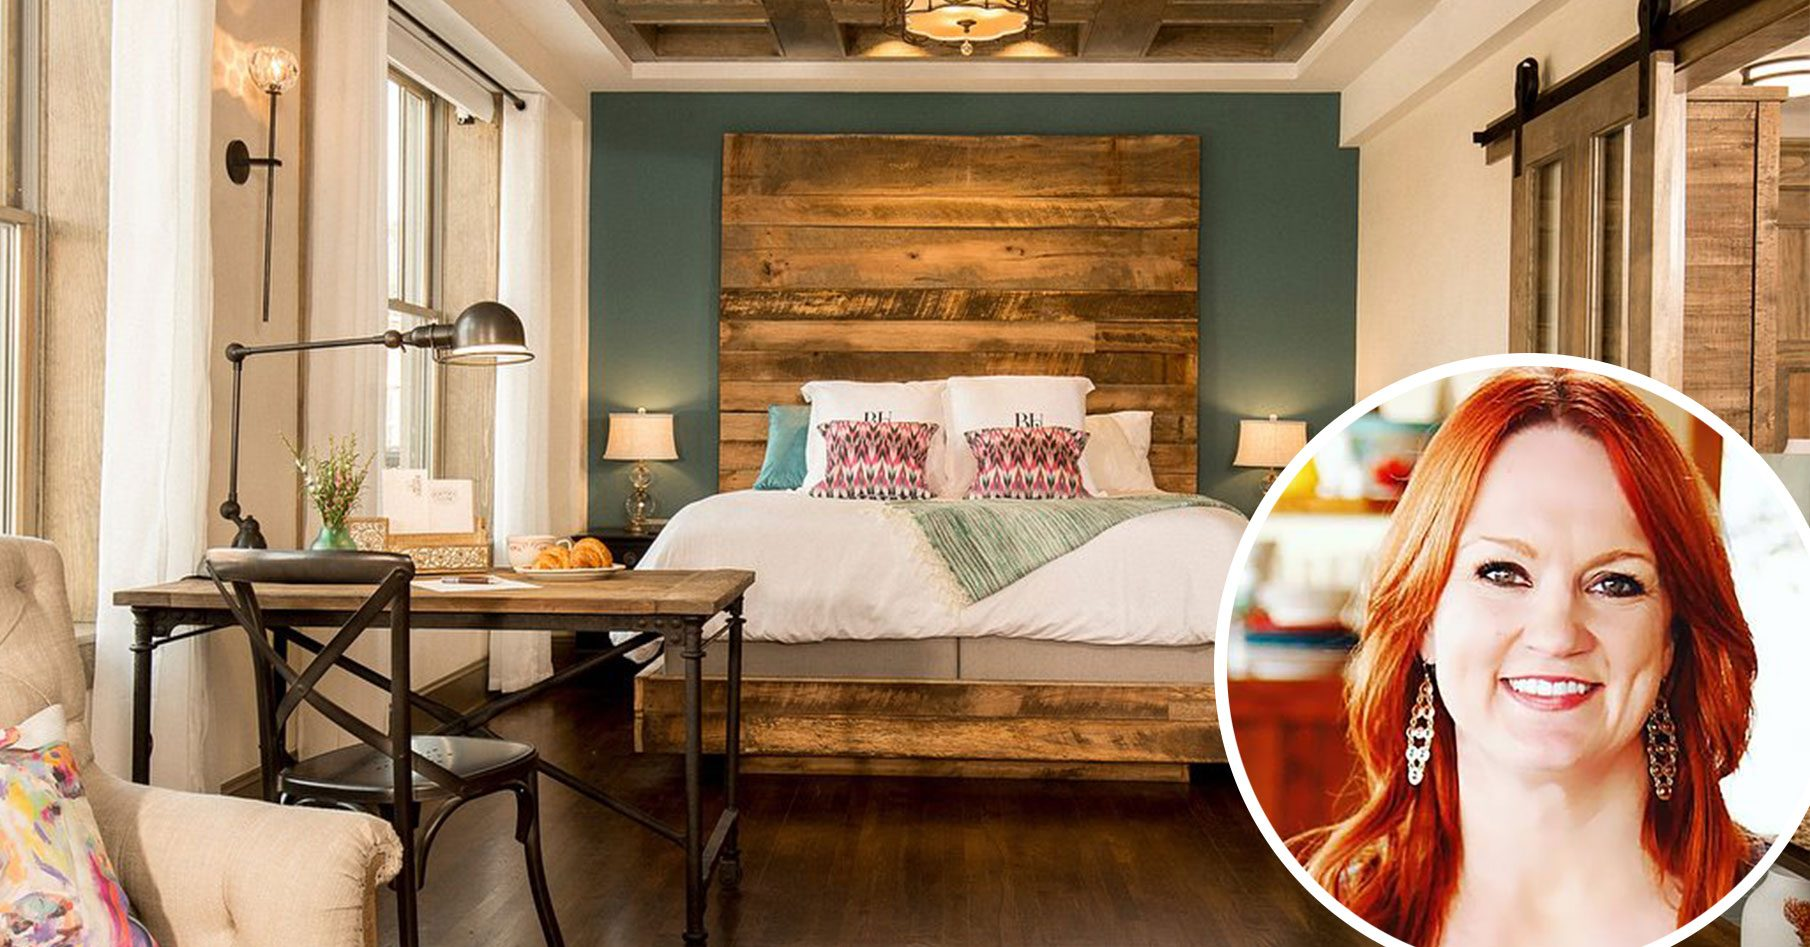 Ree Drummond Opened A Hotel And The Room Service Menu Sounds Amazing